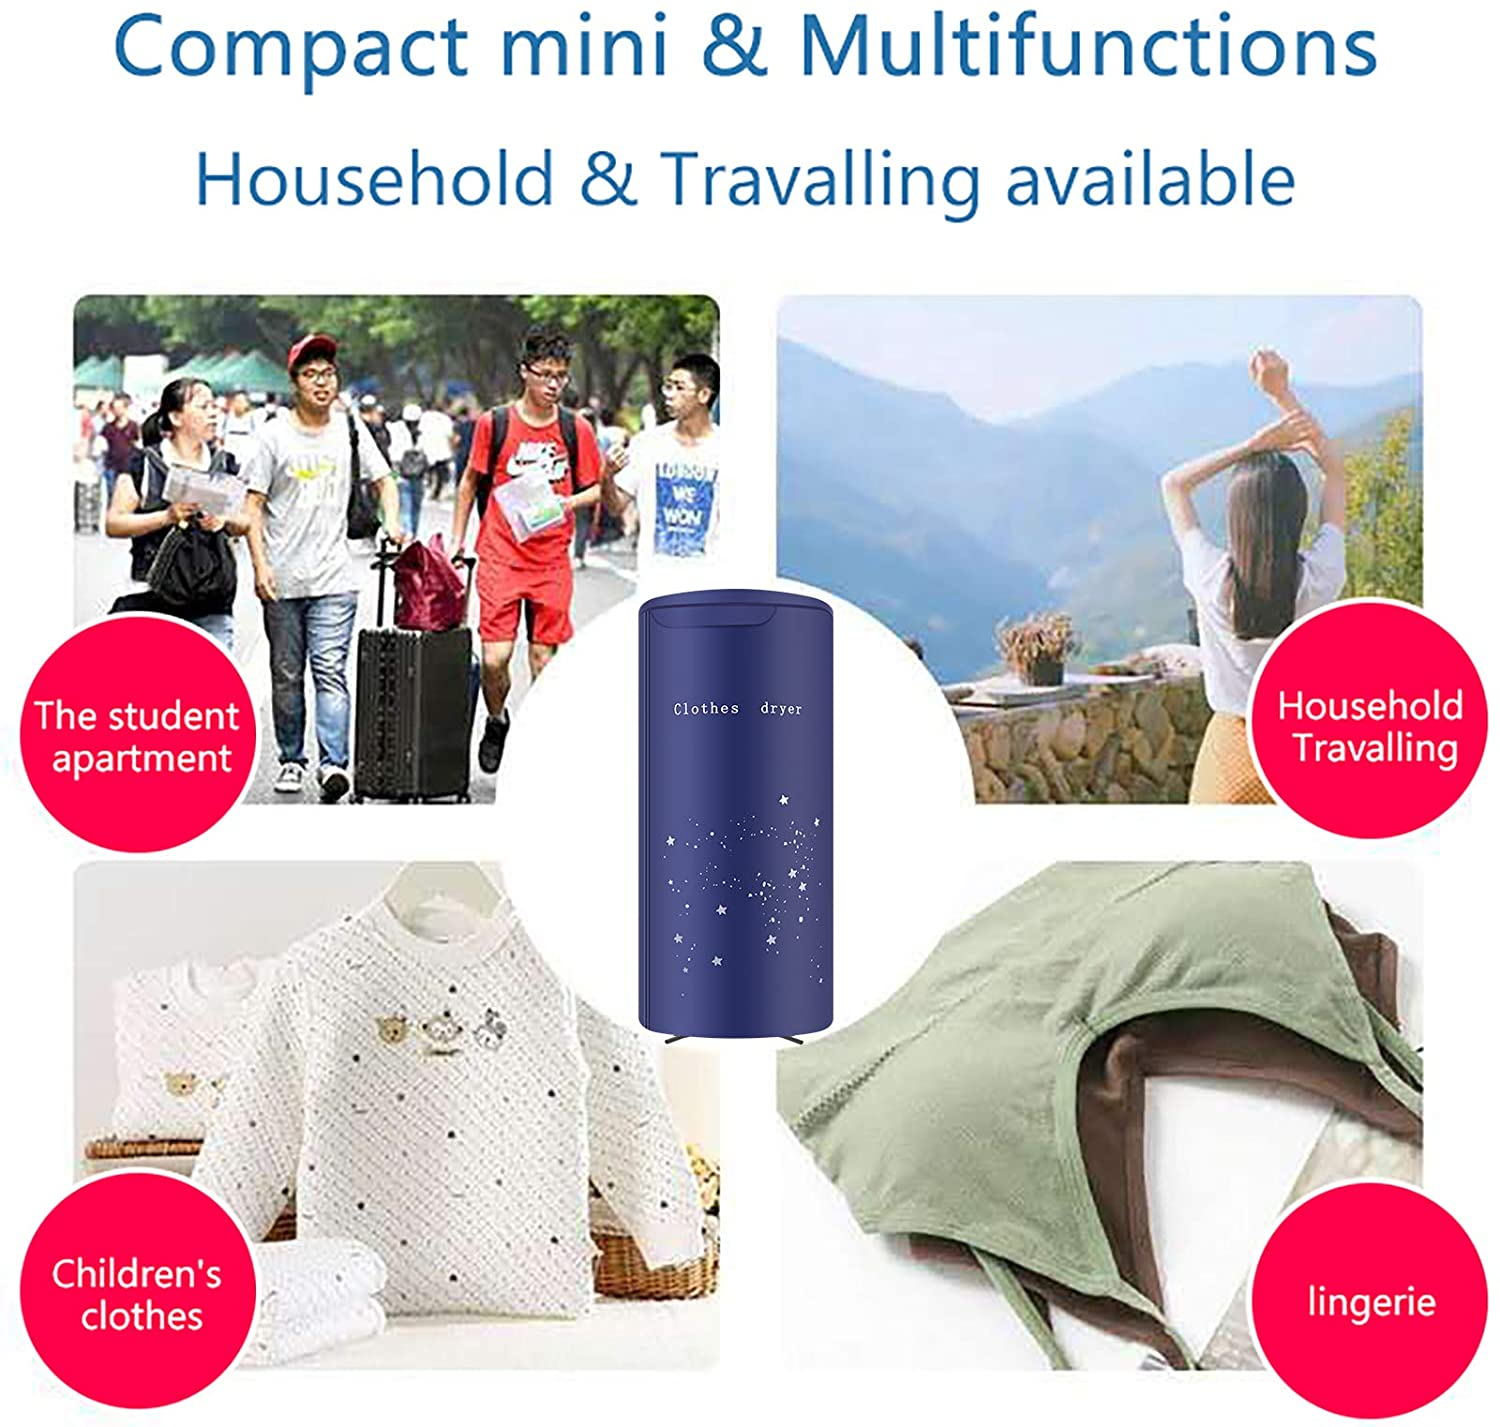 Portable Clothes Dryer Travel Mini 900W dryer machine,Portable dryer for apartments,New Generation Electric Clothes Drying